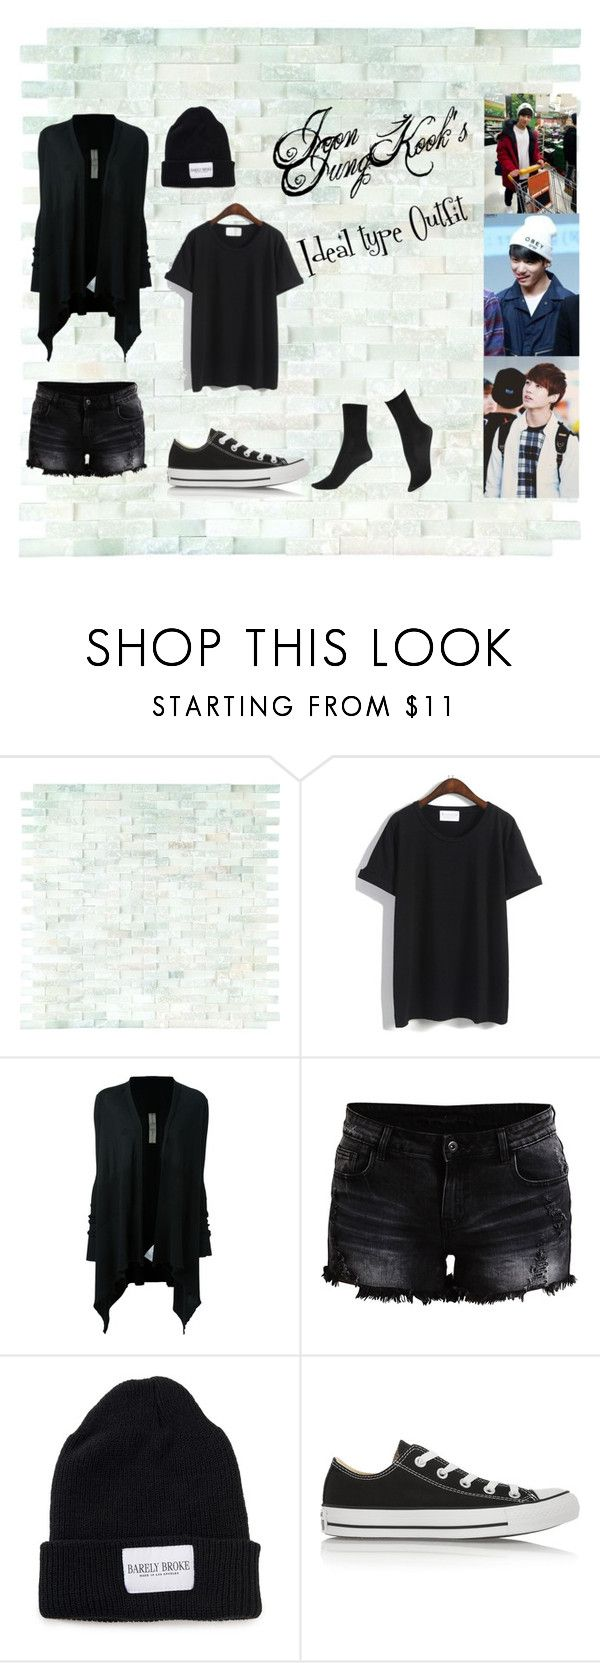 """Jeon jungkook's ideal type outfit"" by nathalia23 ❤ liked on Polyvore featuring WALL, Rick Owens, VILA, Converse and Hue"